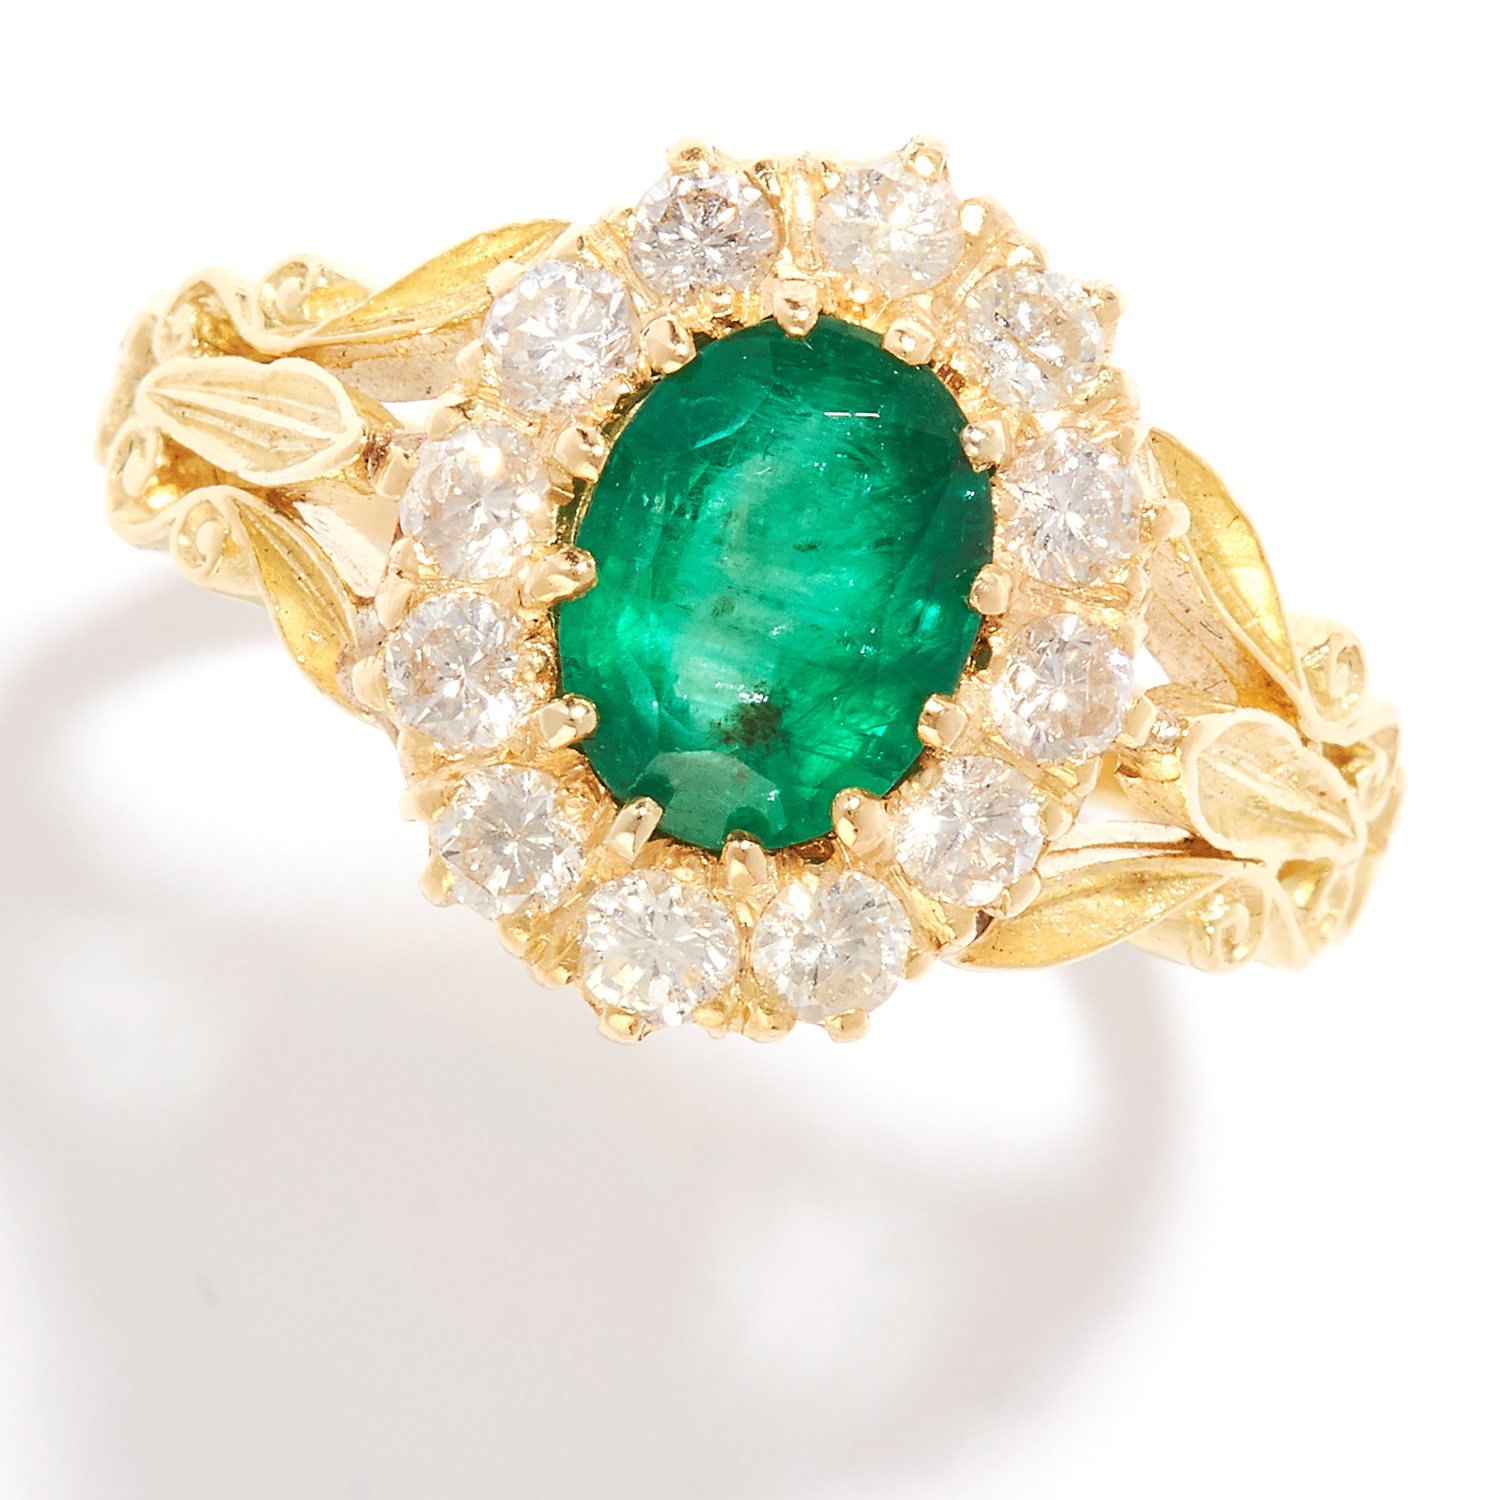 EMERALD AND DIAMOND CLUSTER RING in 18ct yellow gold, set with an oval cut emerald in a cluster of